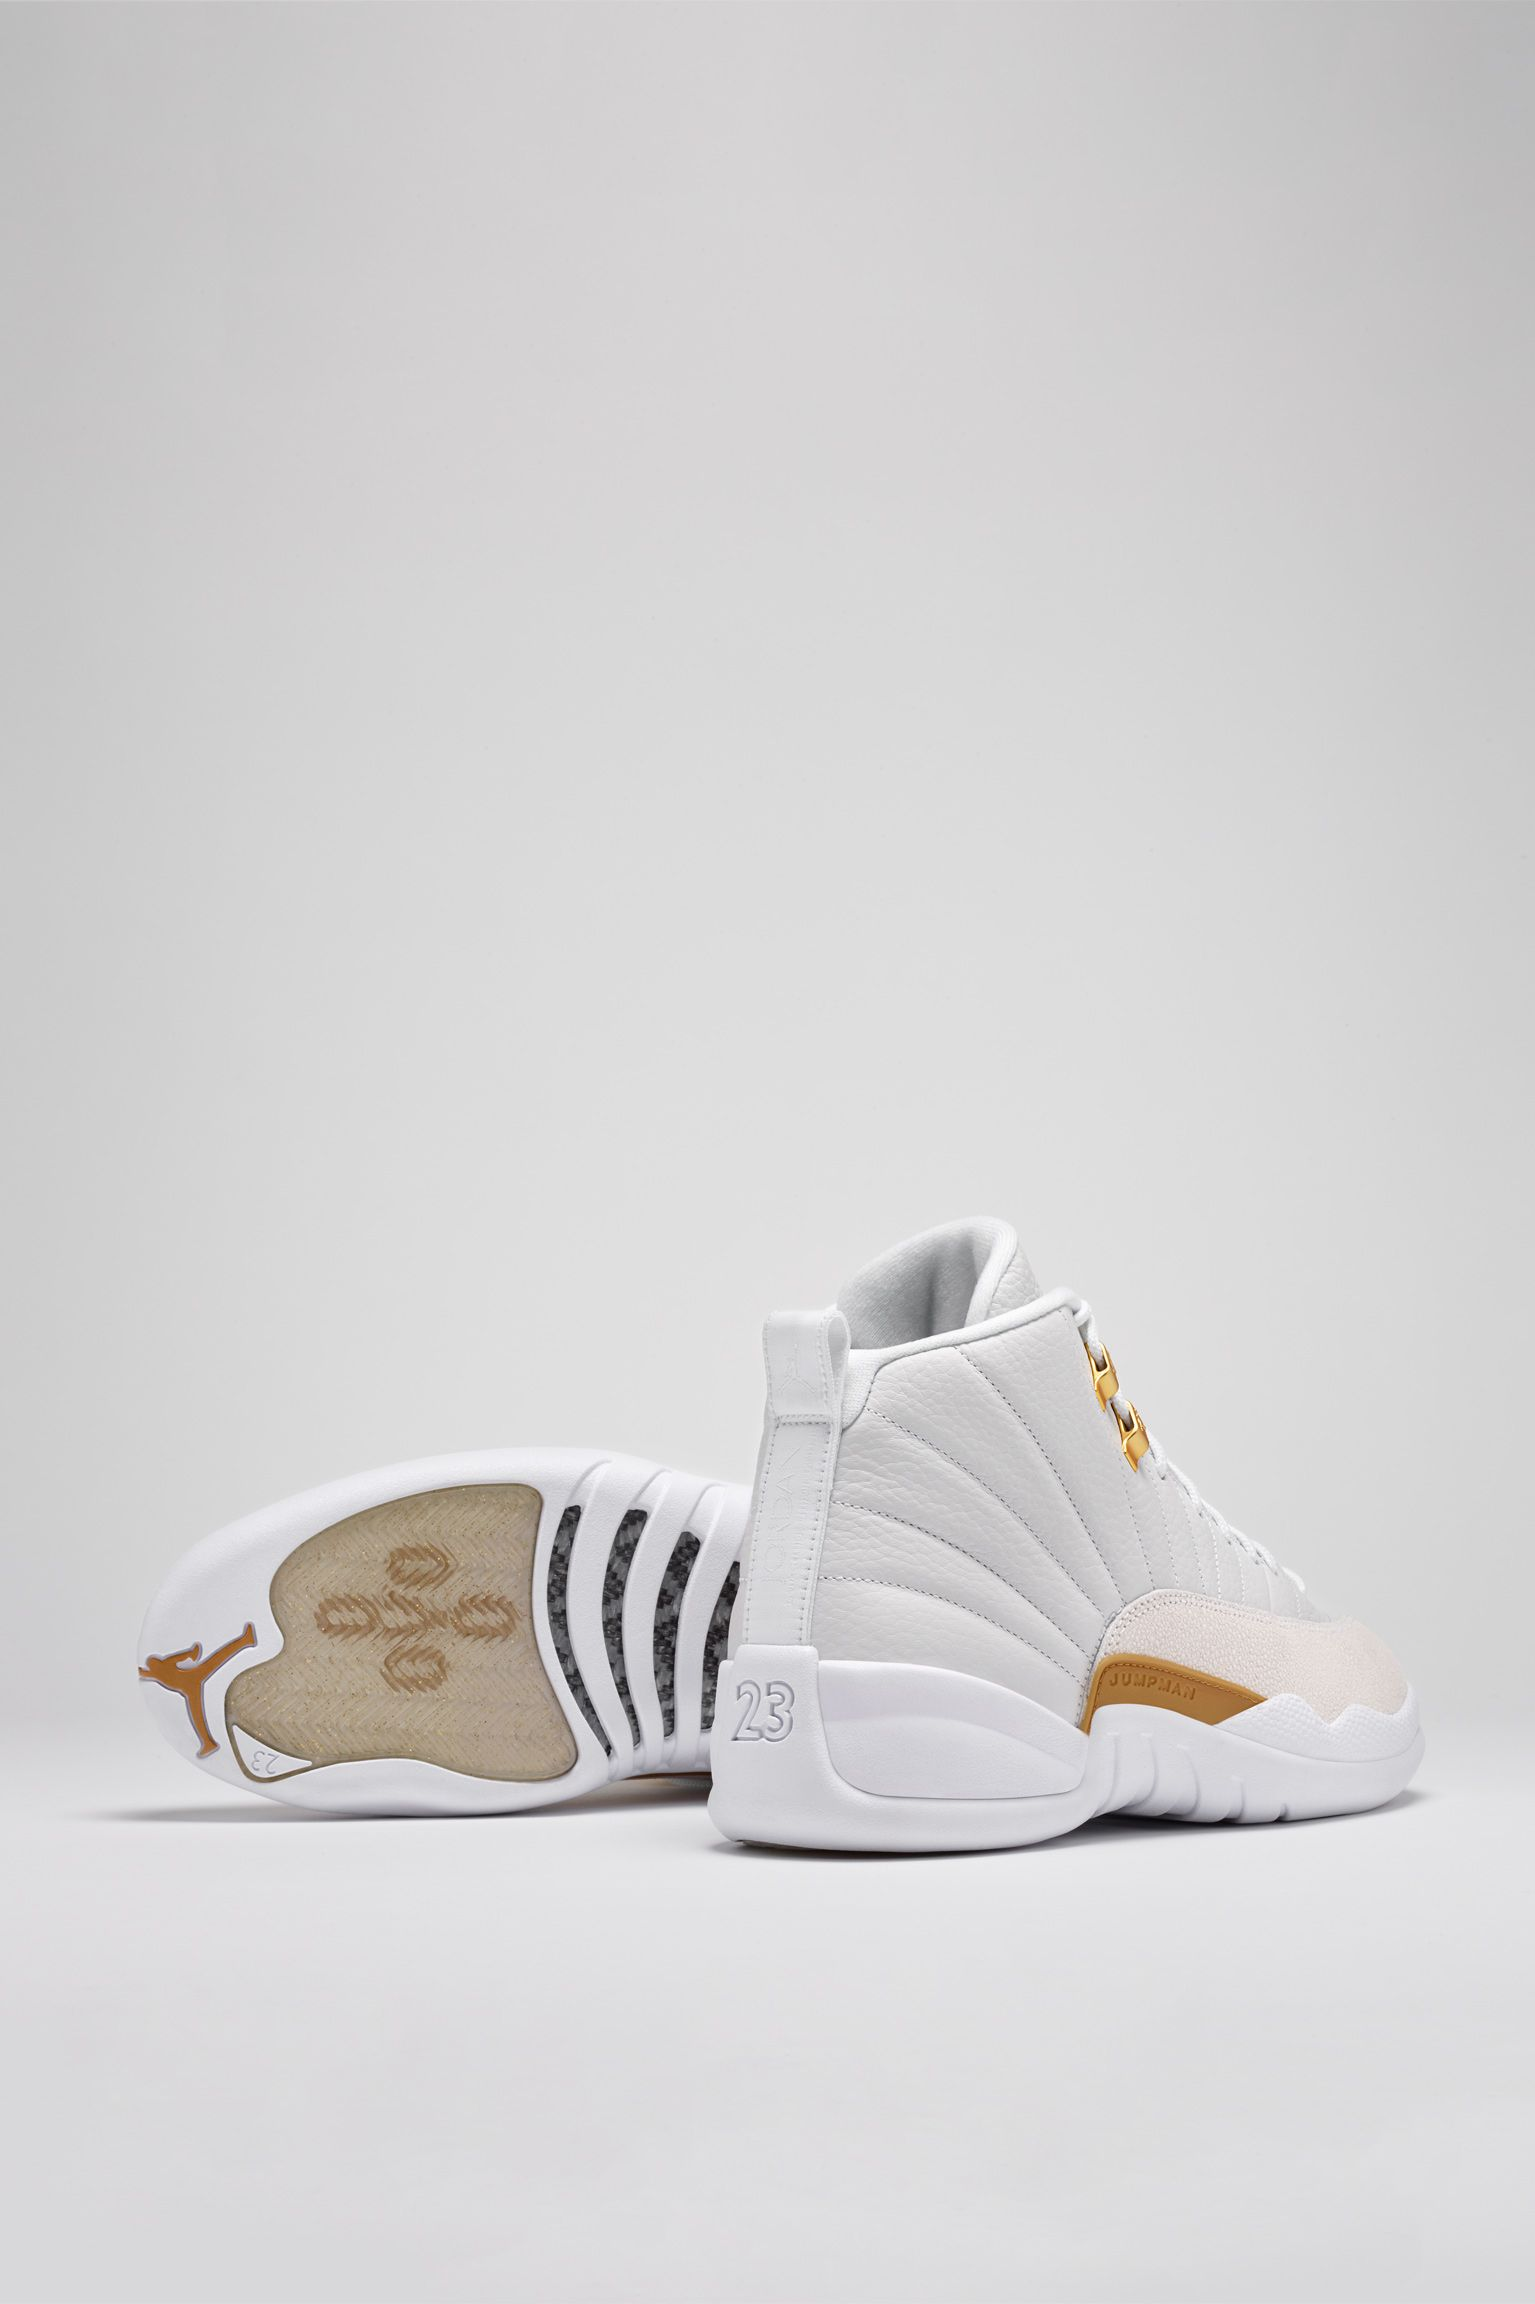 lowest price ab164 93e23 ... Nike has announced that the white colorway of the Air Jordan 12 OVO  will release through ...